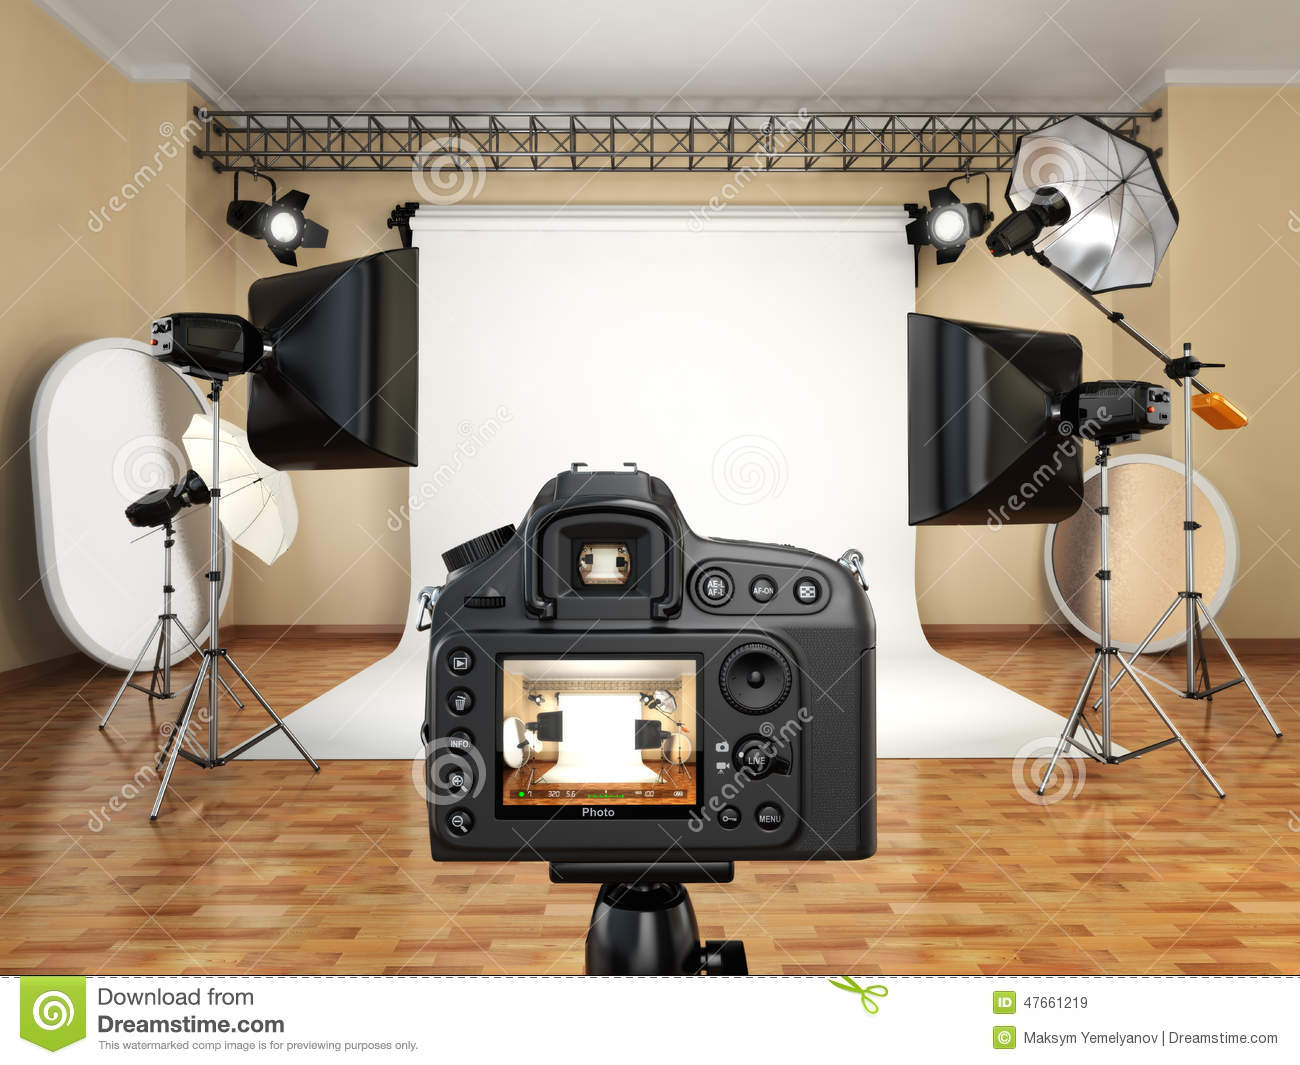 appareil photo de dslr dans le studio de photo avec le mat riel d 39 clairage softbox et. Black Bedroom Furniture Sets. Home Design Ideas